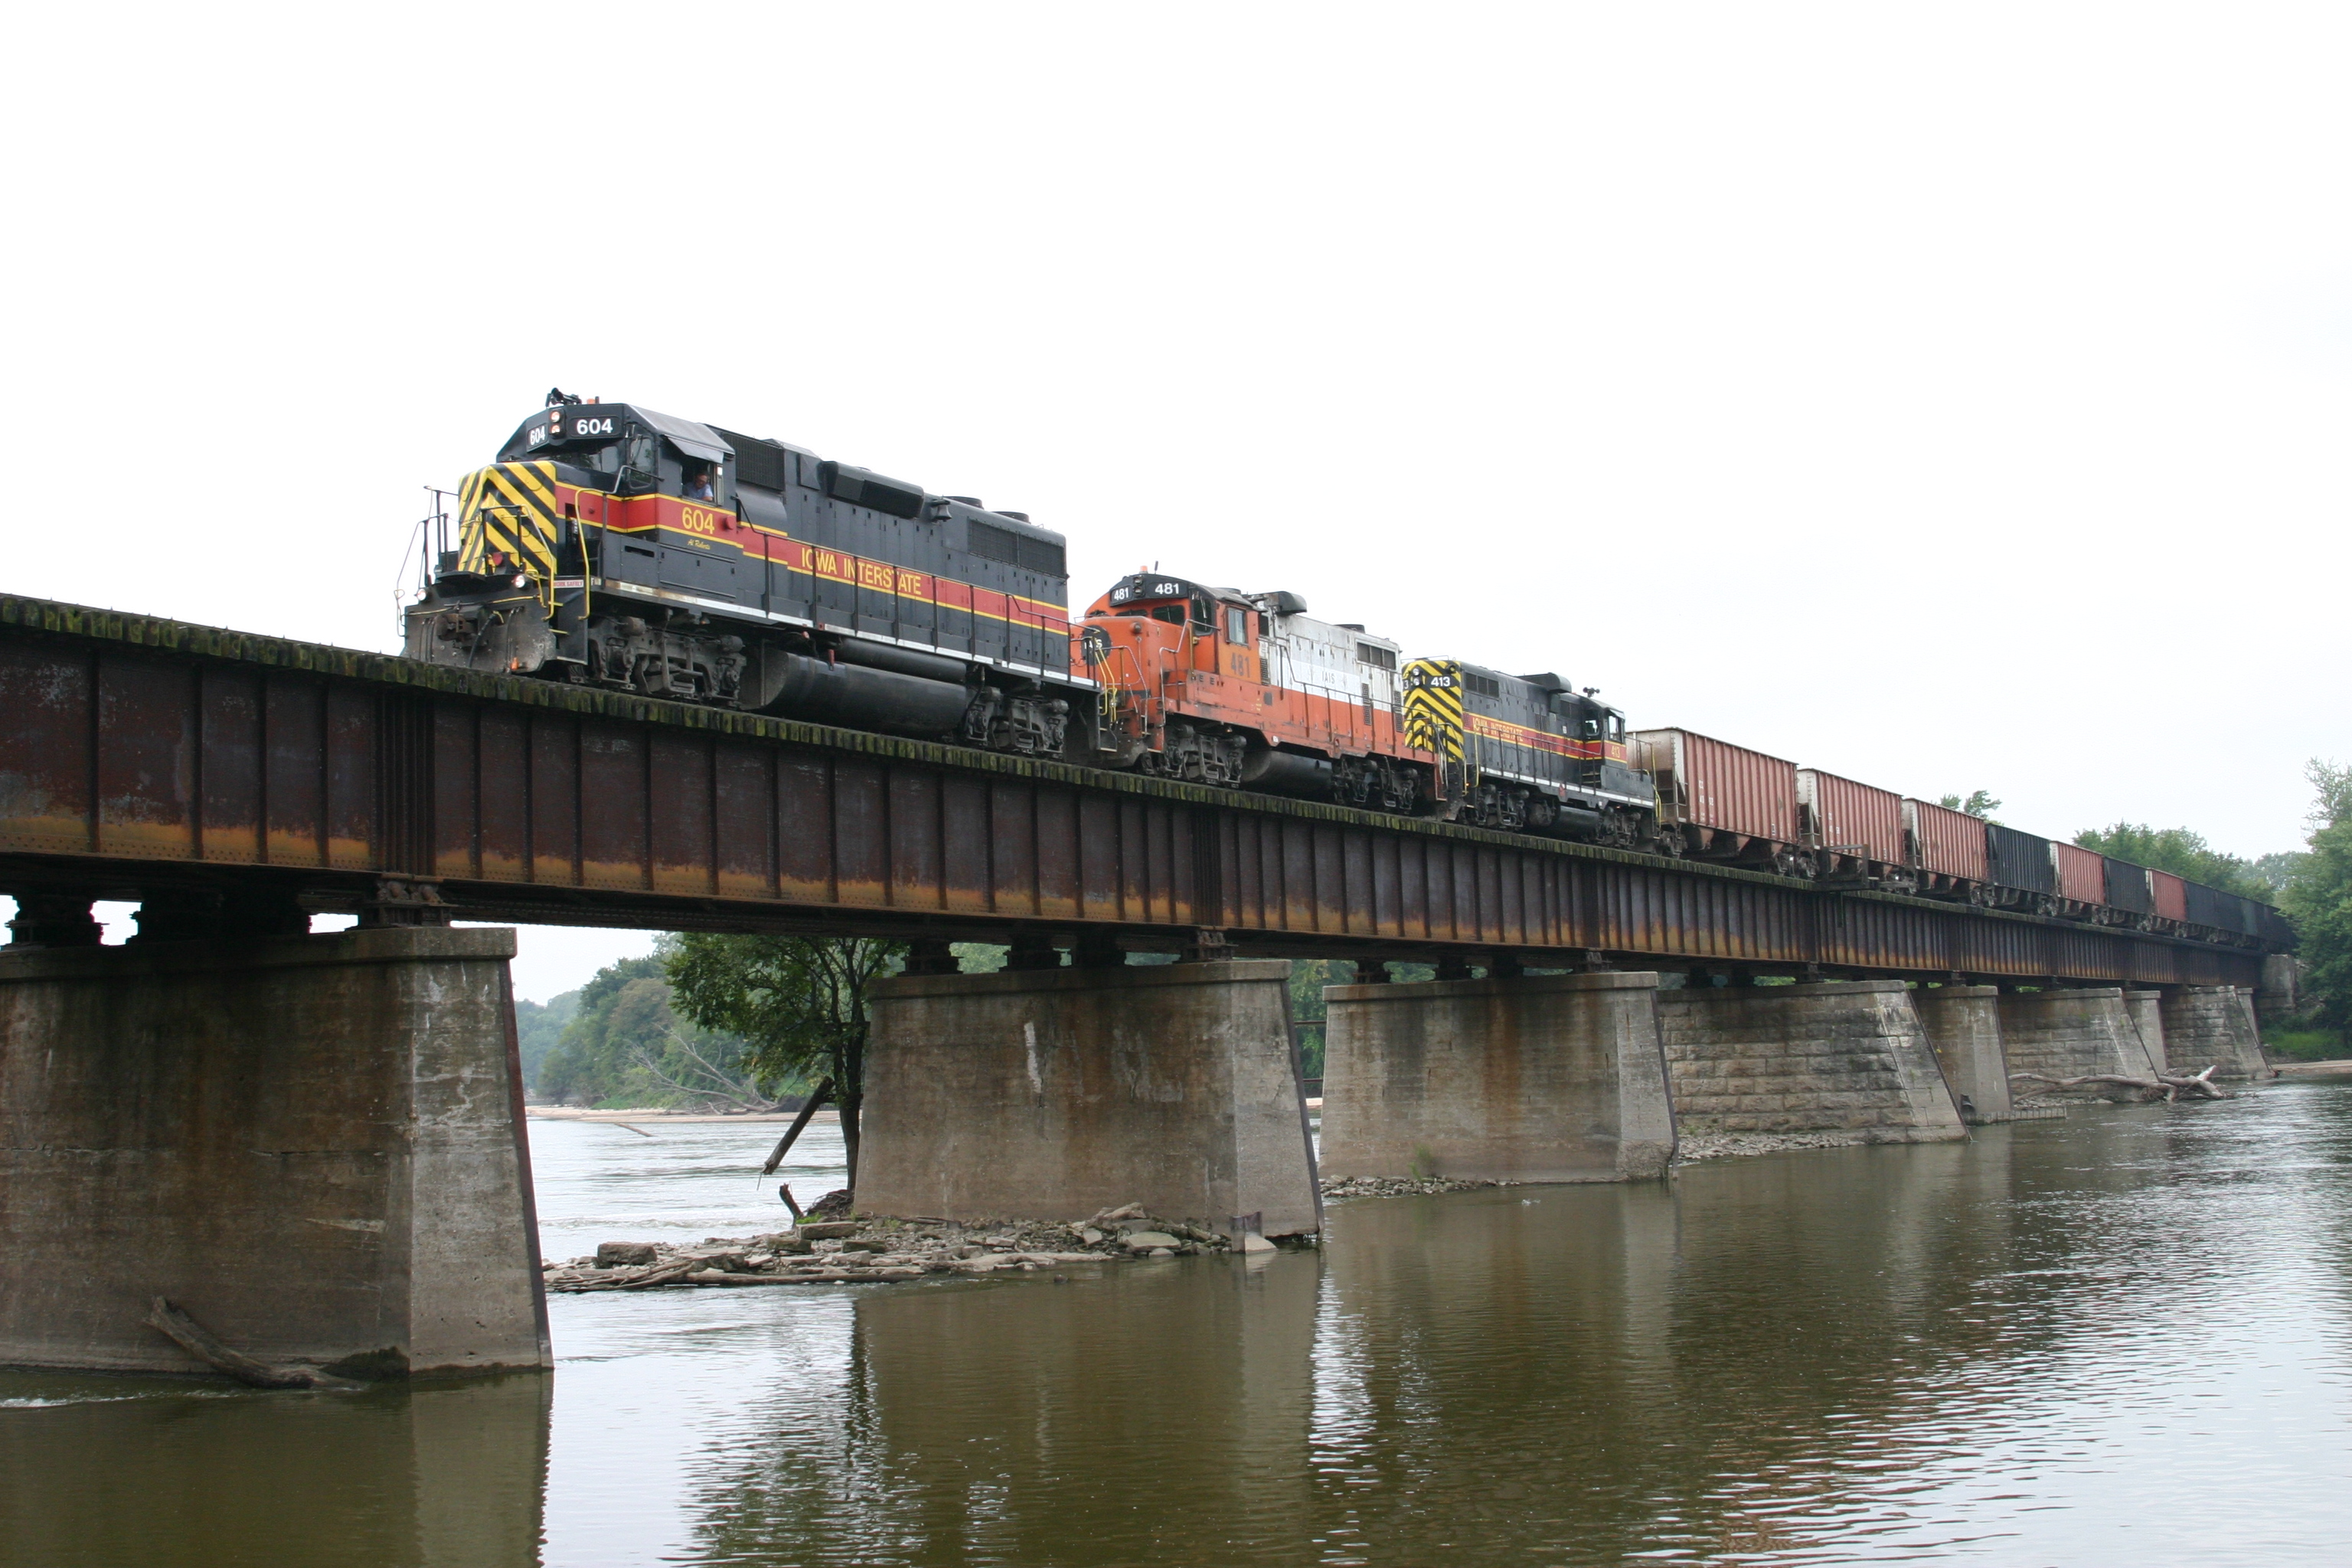 IAIS 604 east crossing the Cedar River just west of Moscow, IA, on 26-Aug-2004